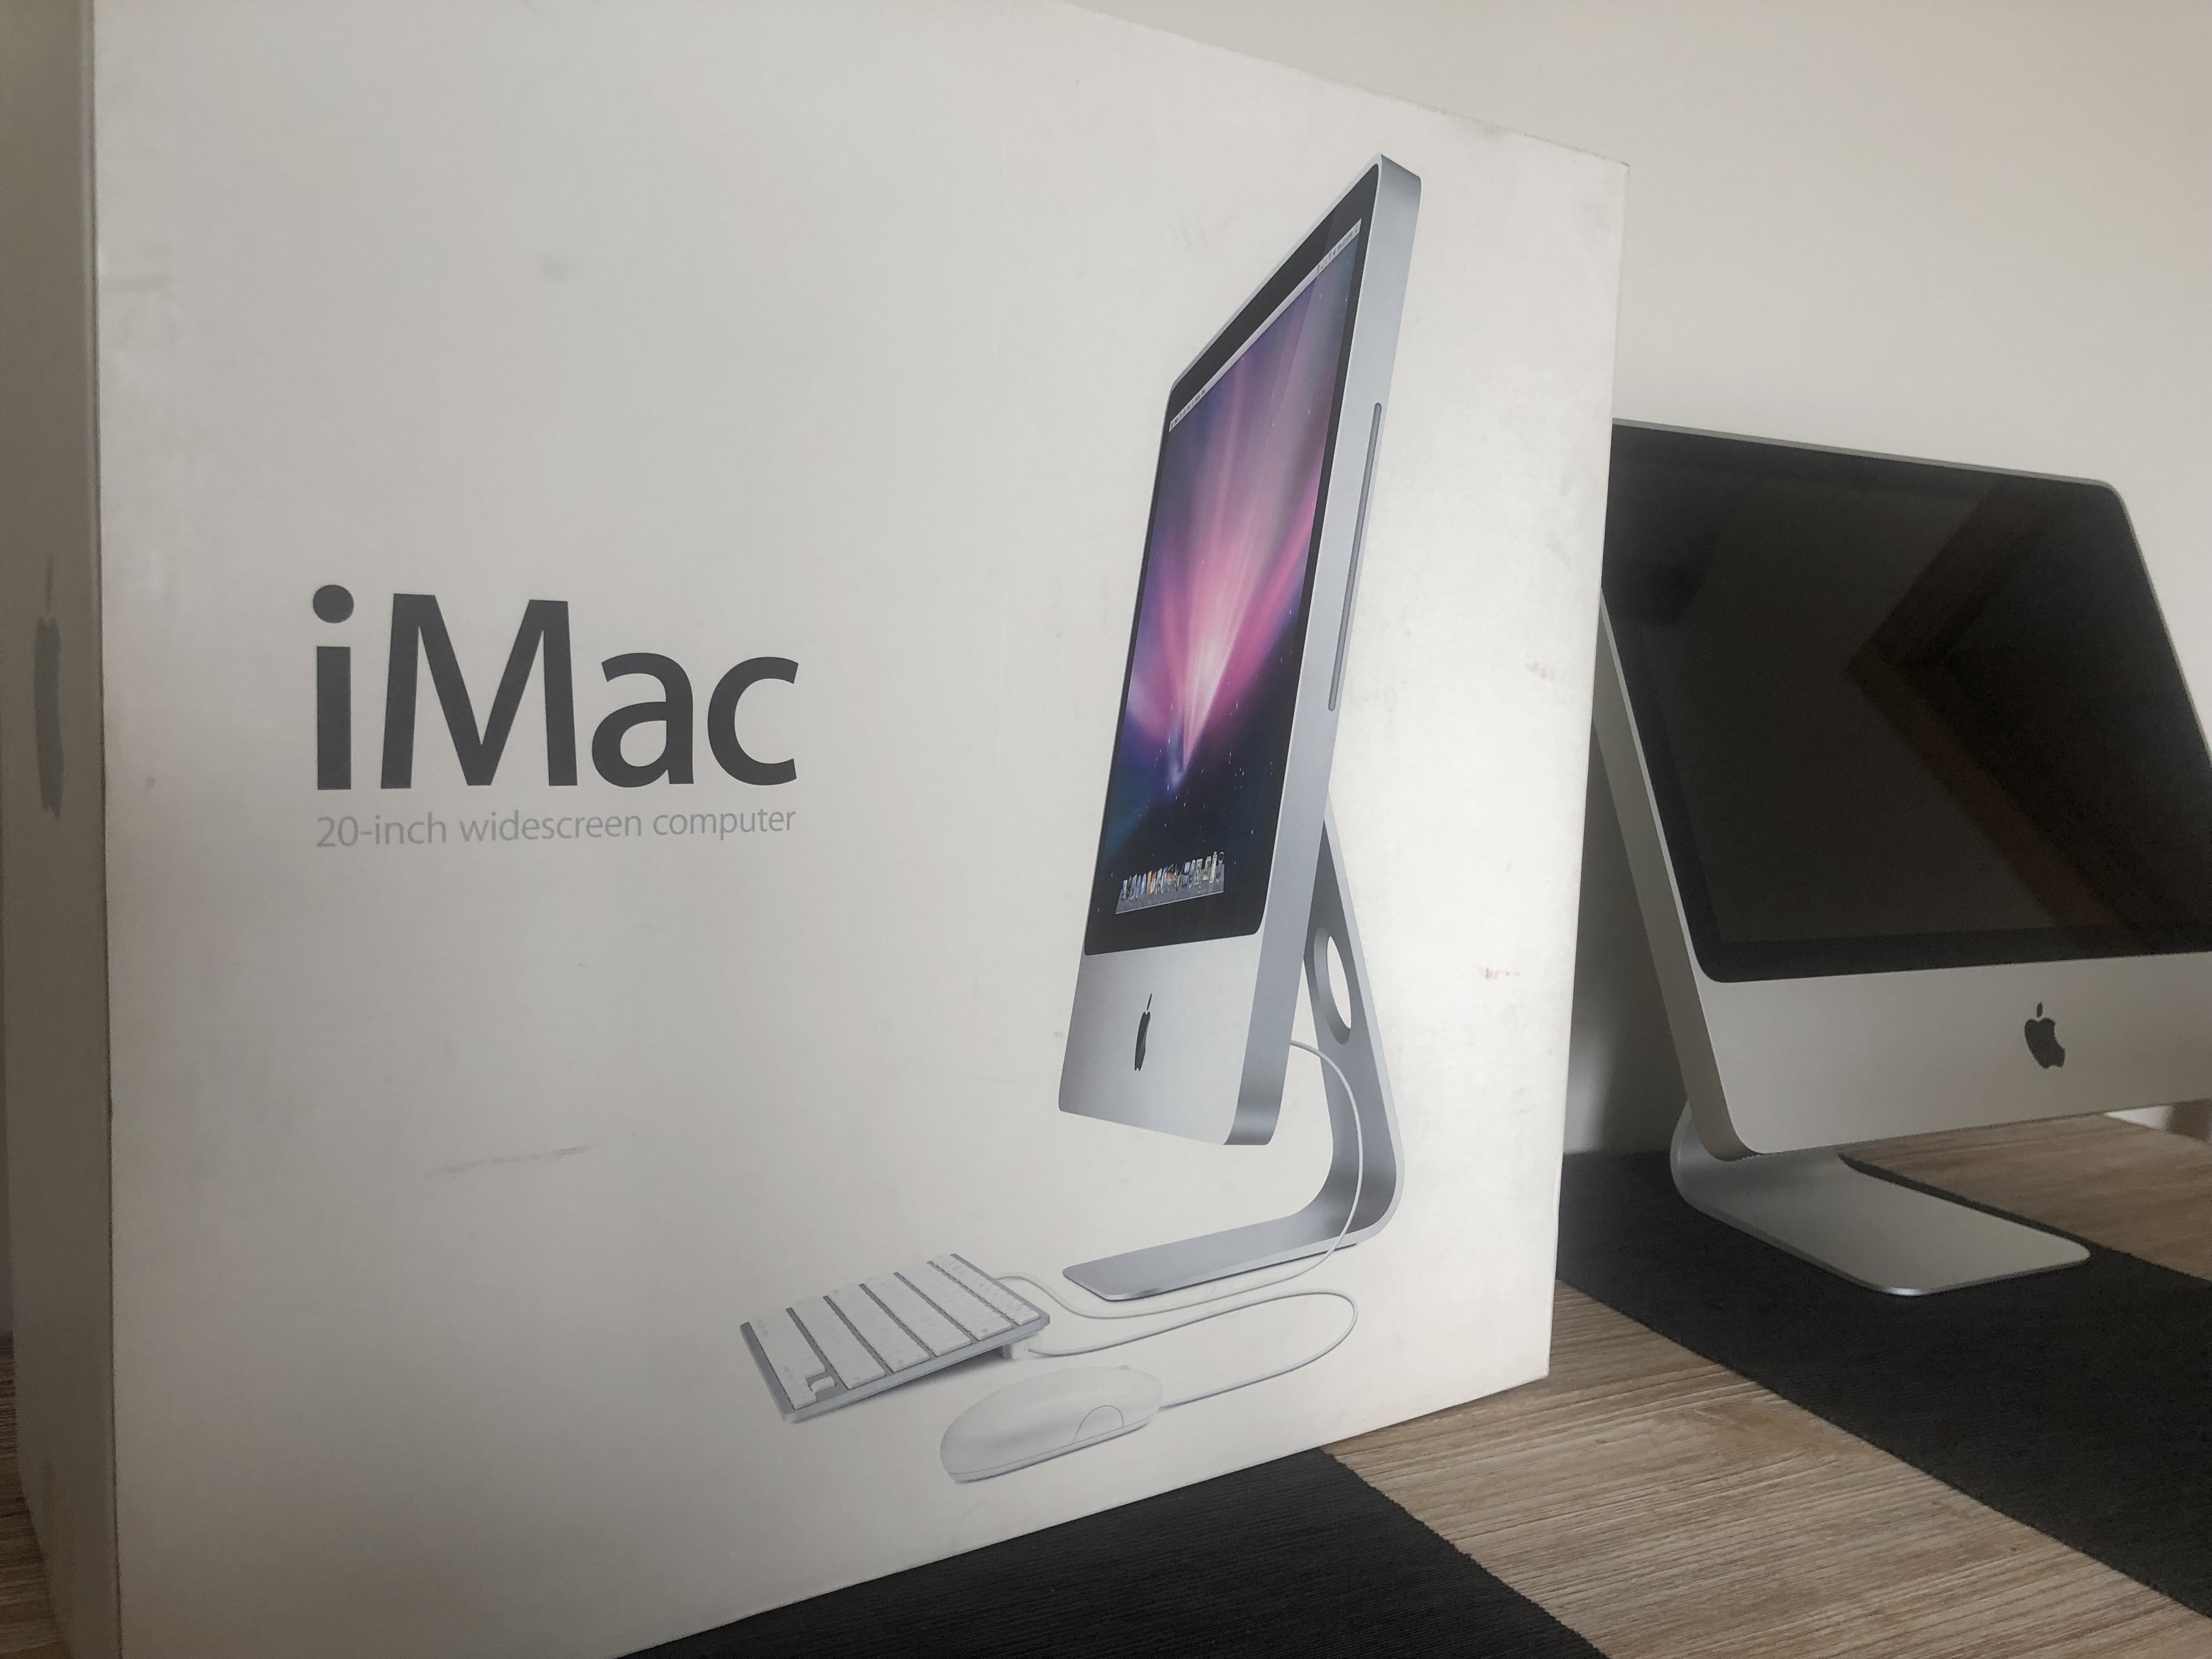 vender-mac-imac-apple-segunda-mano-598120190513091548-14